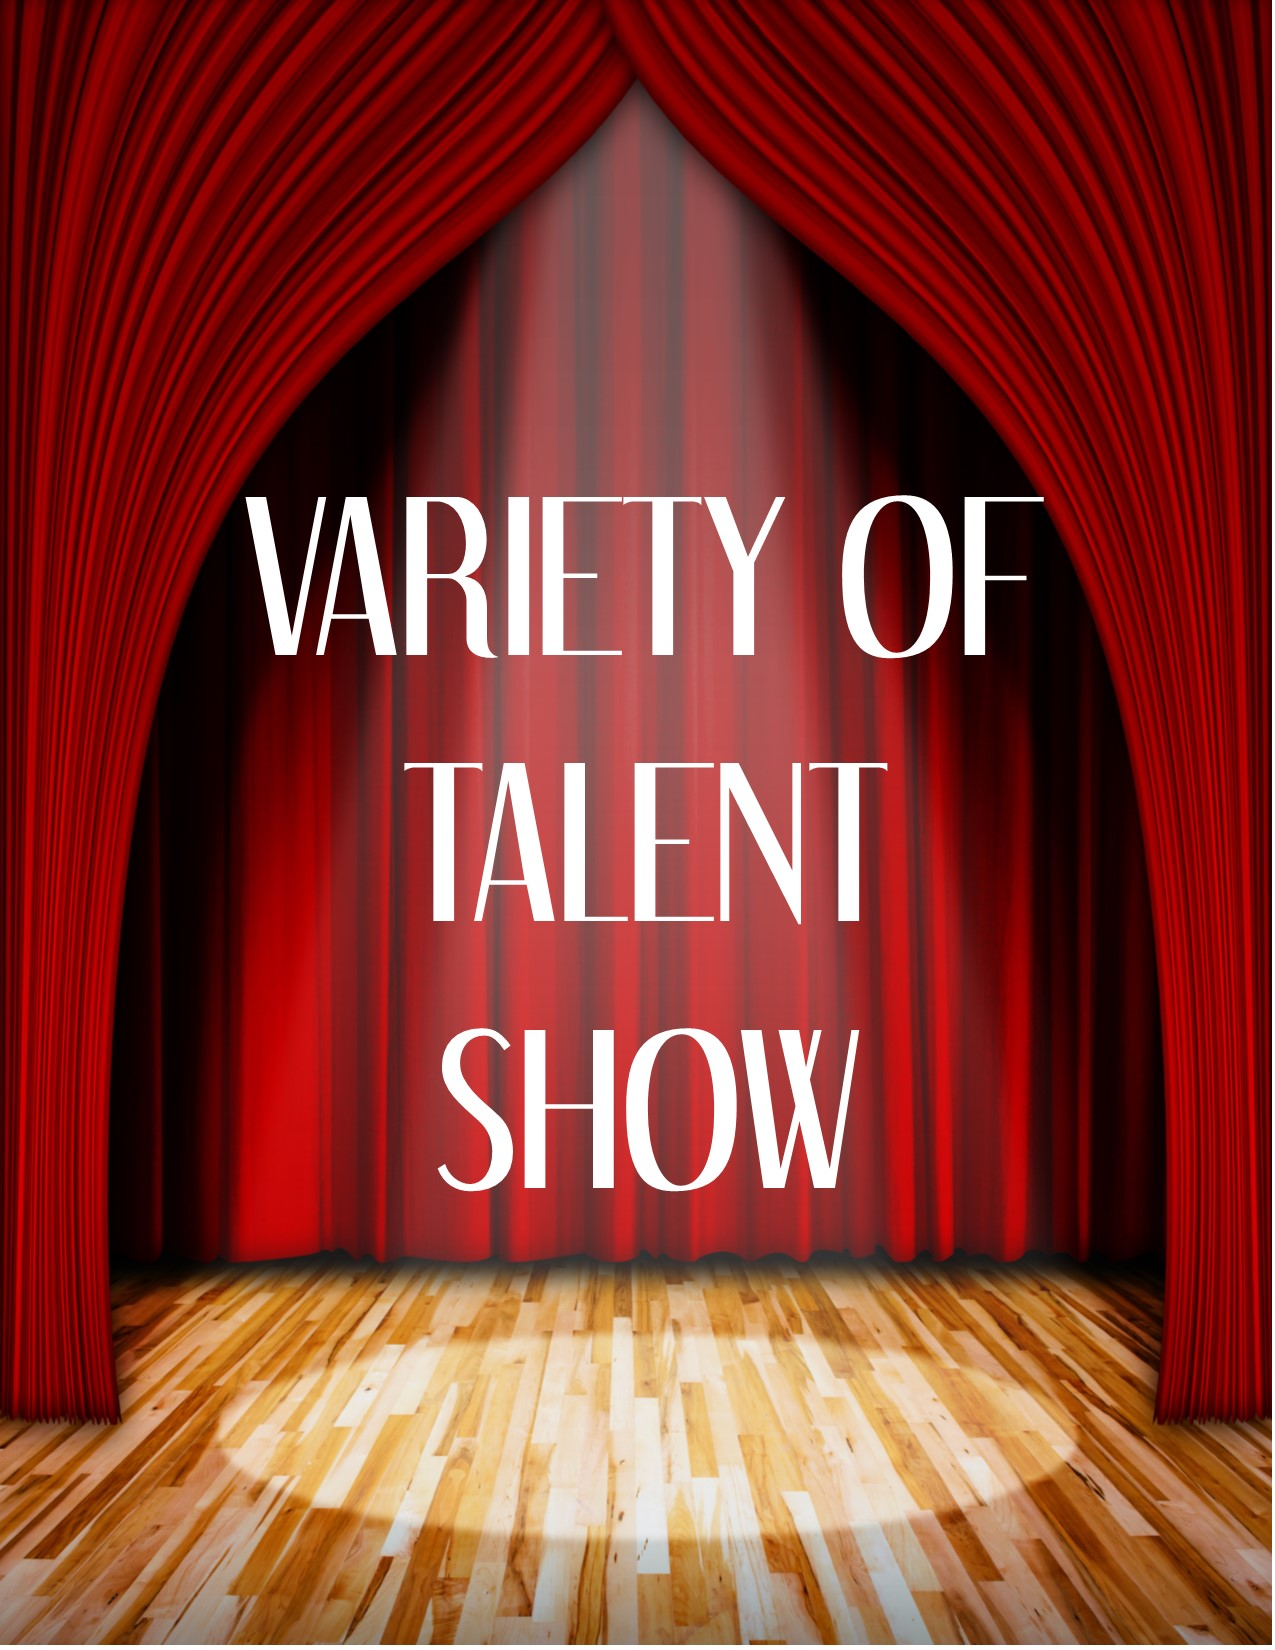 Variety of talent show